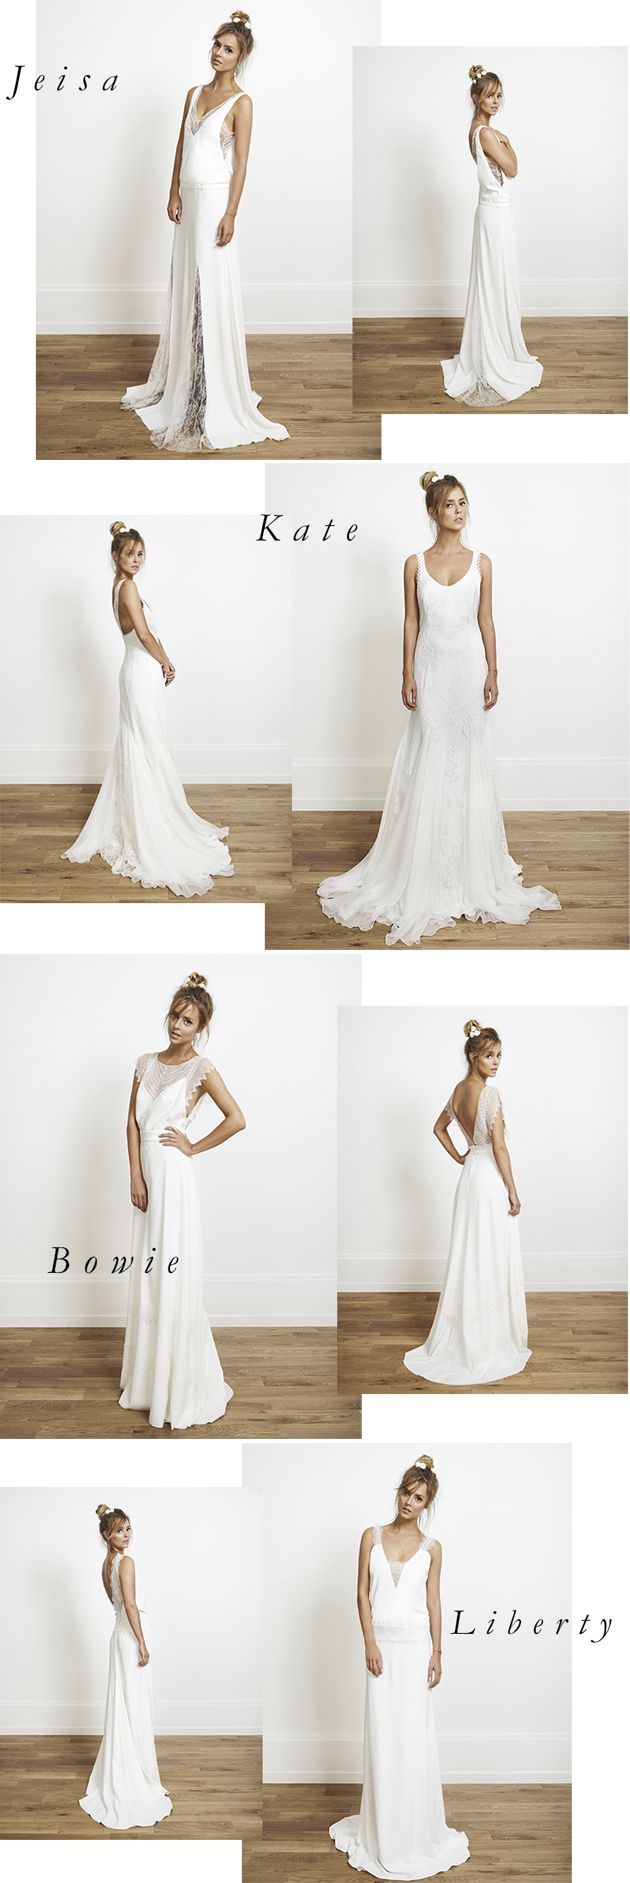 Since I am working on wedding dresses, my eyes naturally go towards beautiful gowns as I browse through the internet. I wanted to share this French designer, Rime Arodaky. Her designs are beautiful - free spirited, beautiful shape to flatter your body and unexpected back details and cut outs. If you've been reading my blog, …